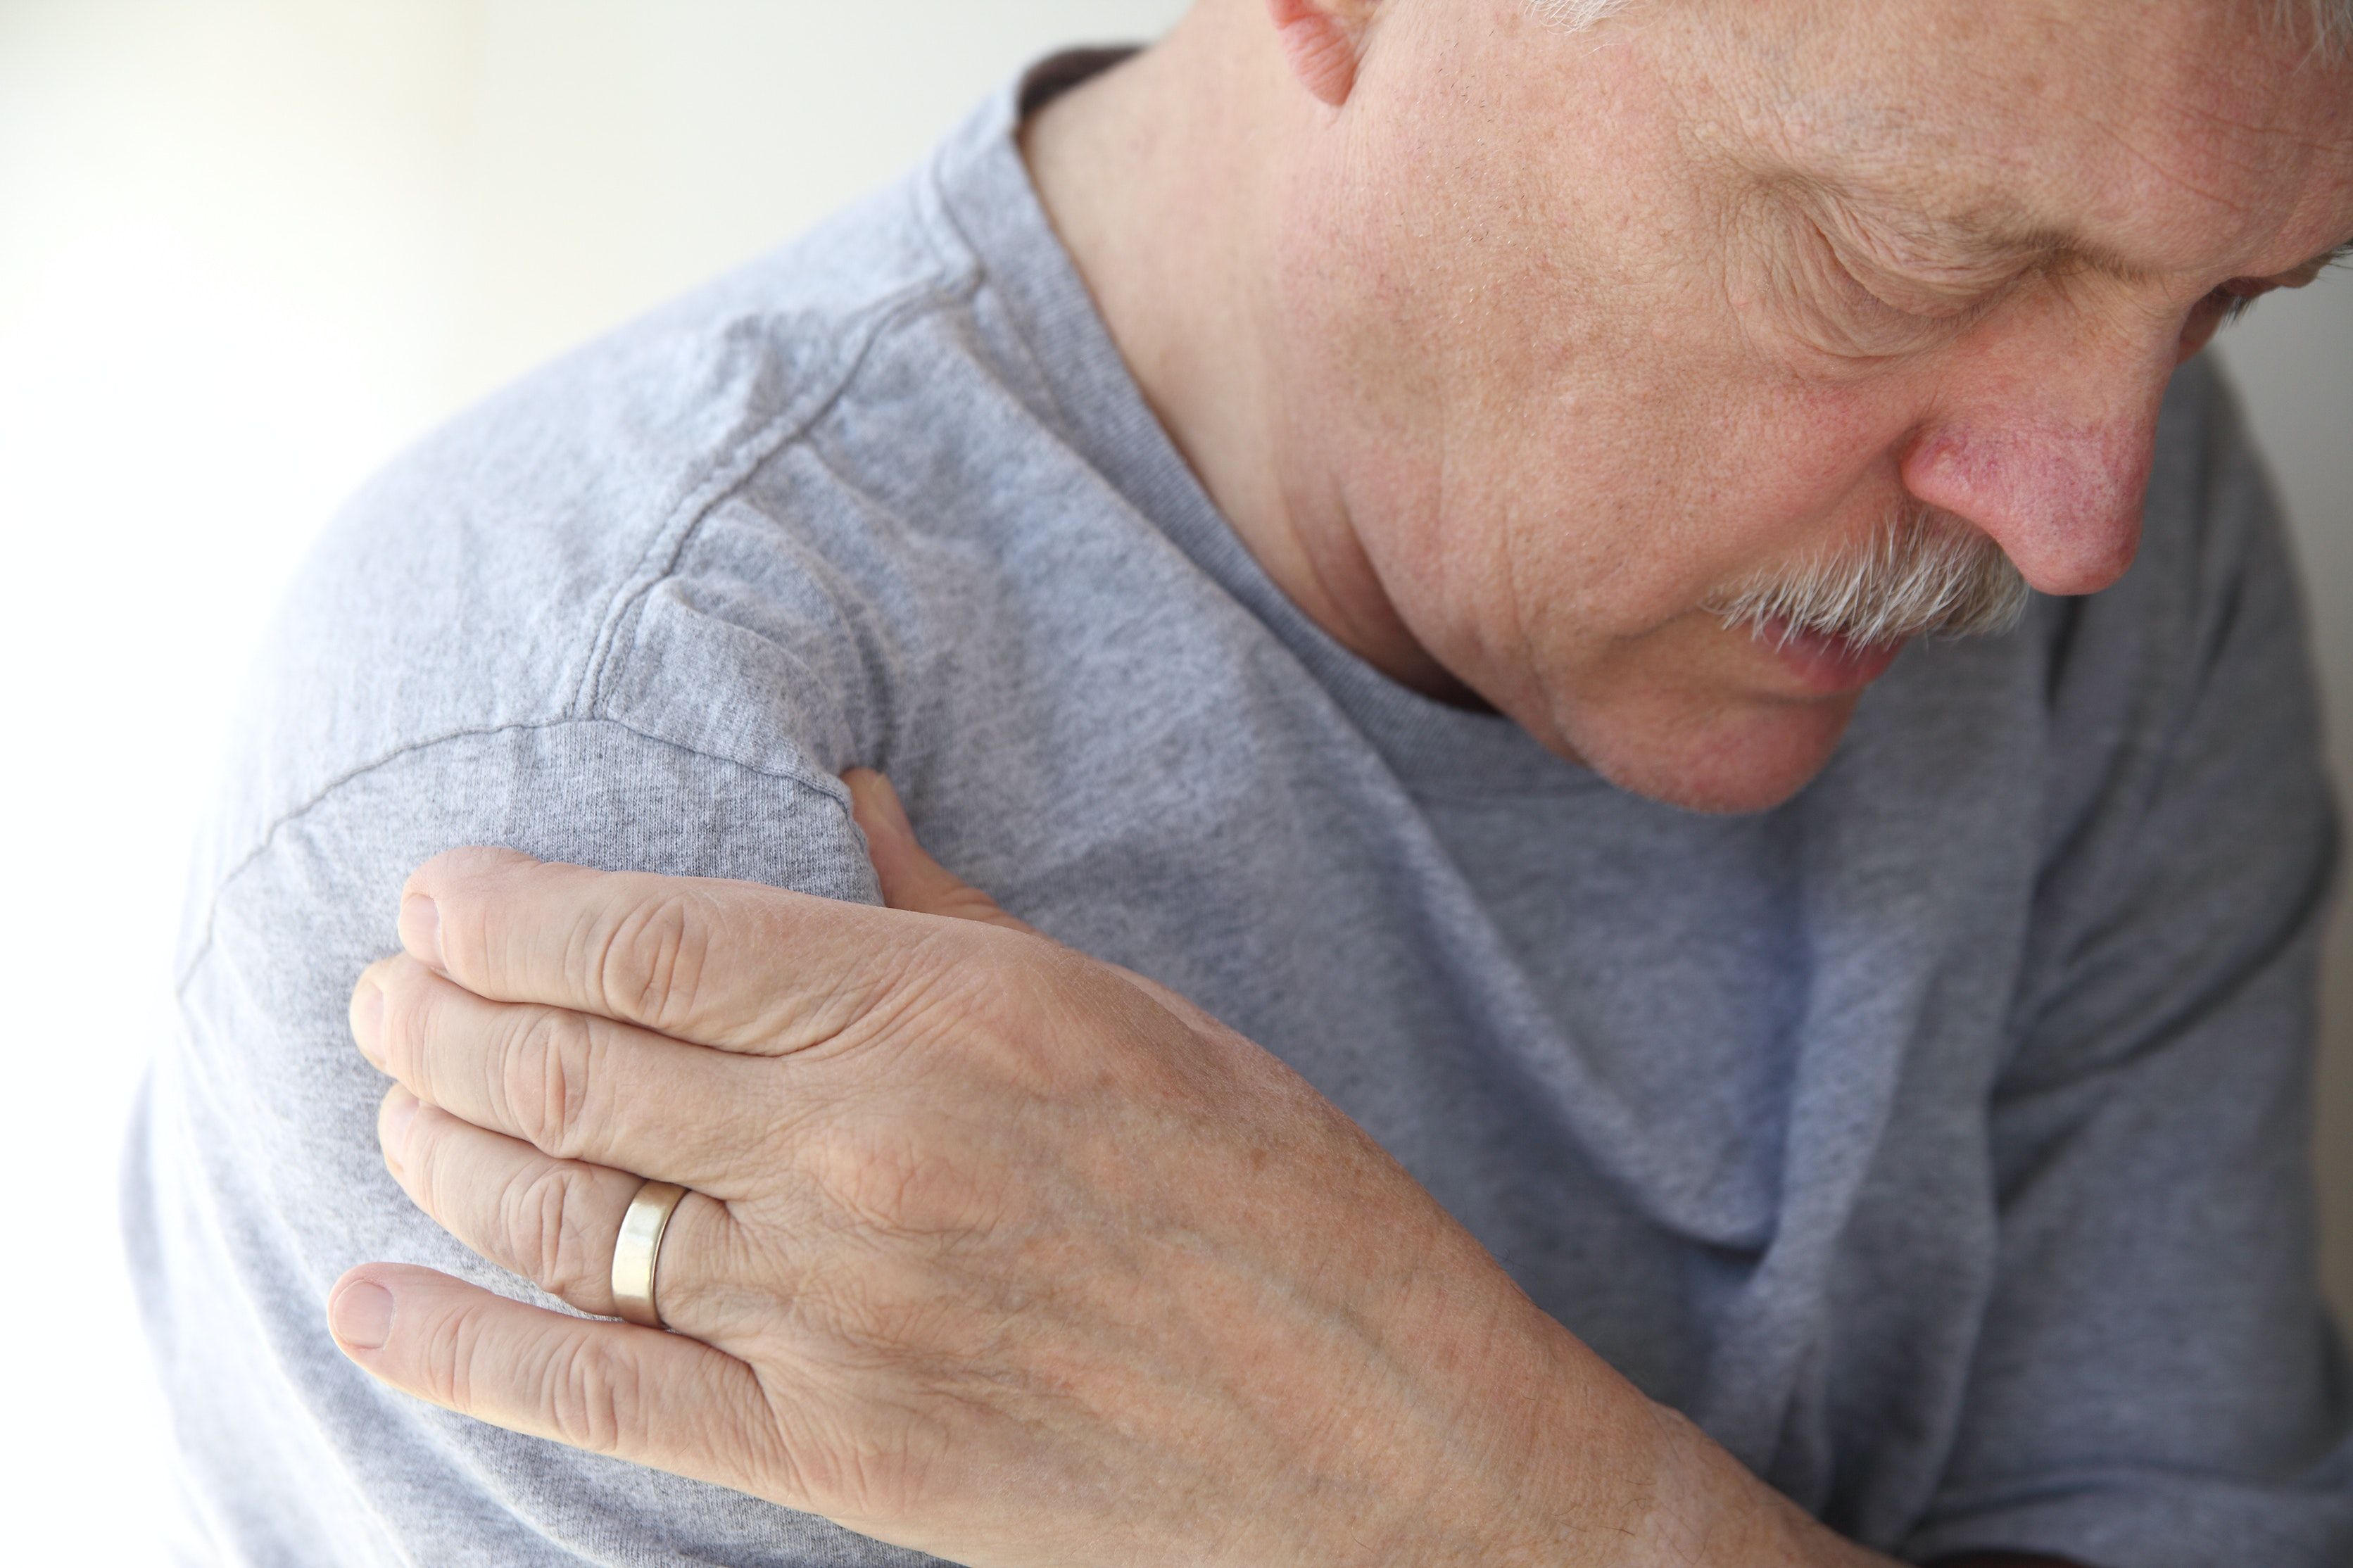 An image depicting a person suffering from shoulder weakness symptoms